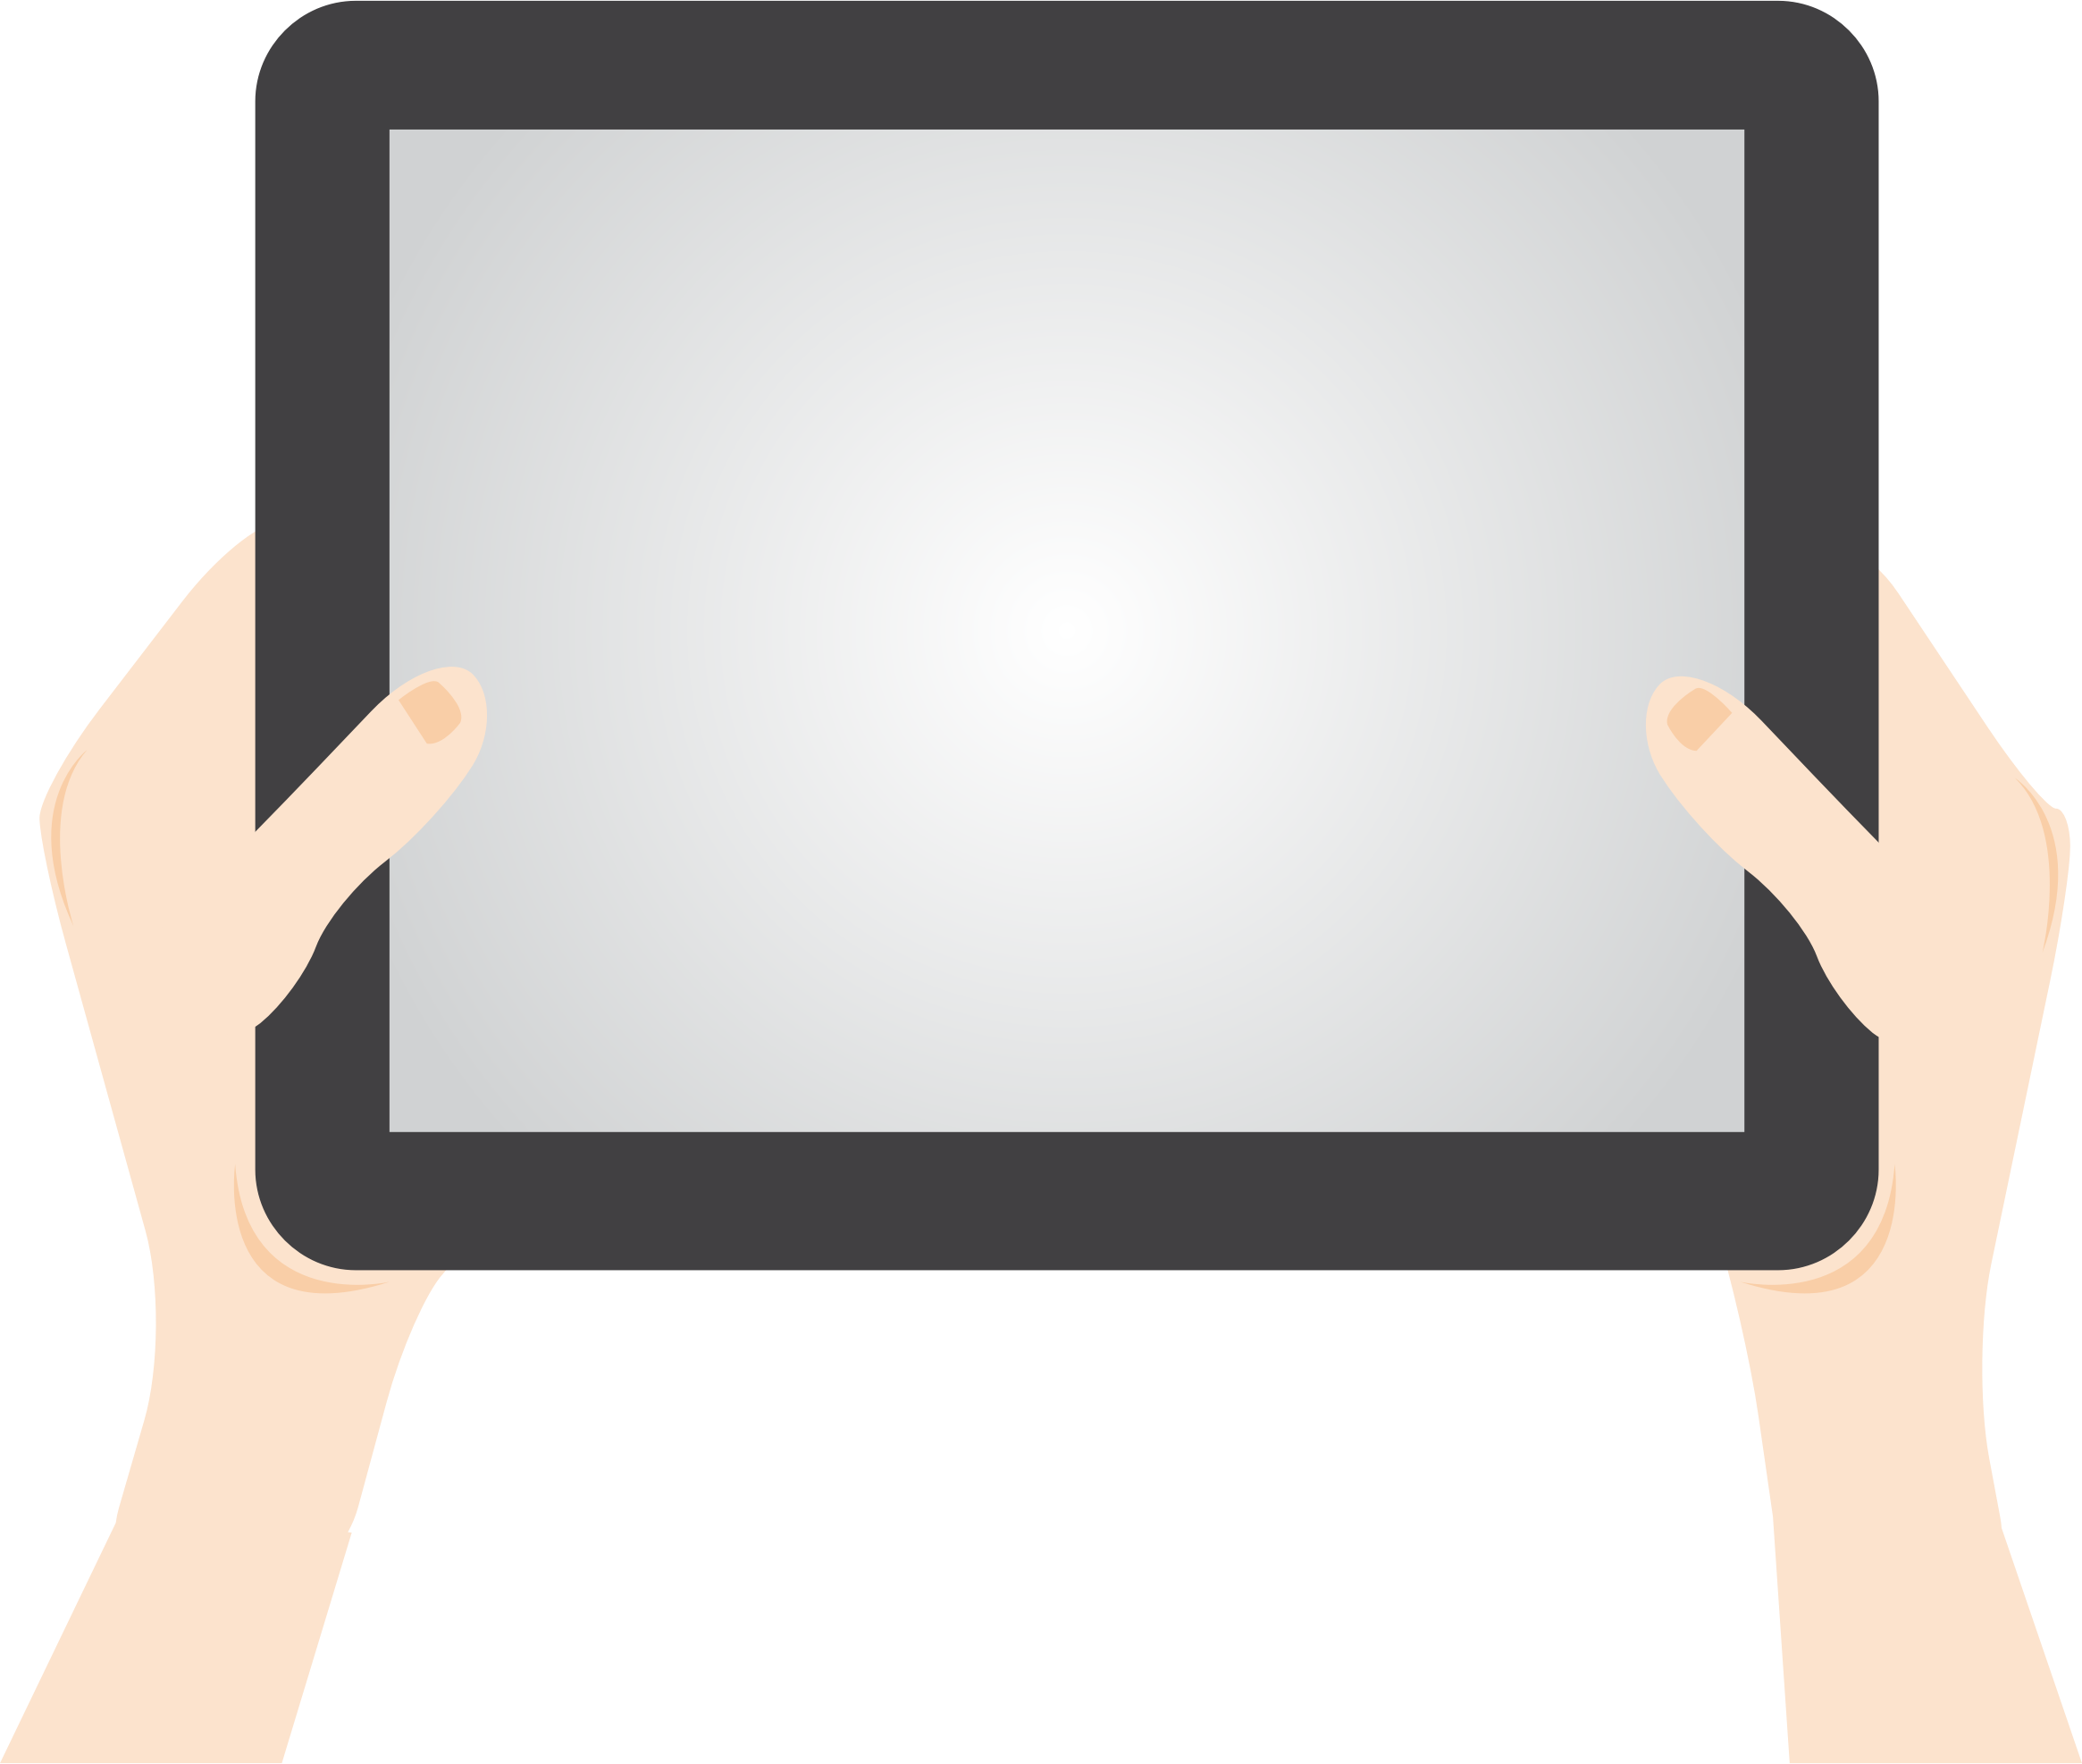 Person Holding Tablet by GDJ